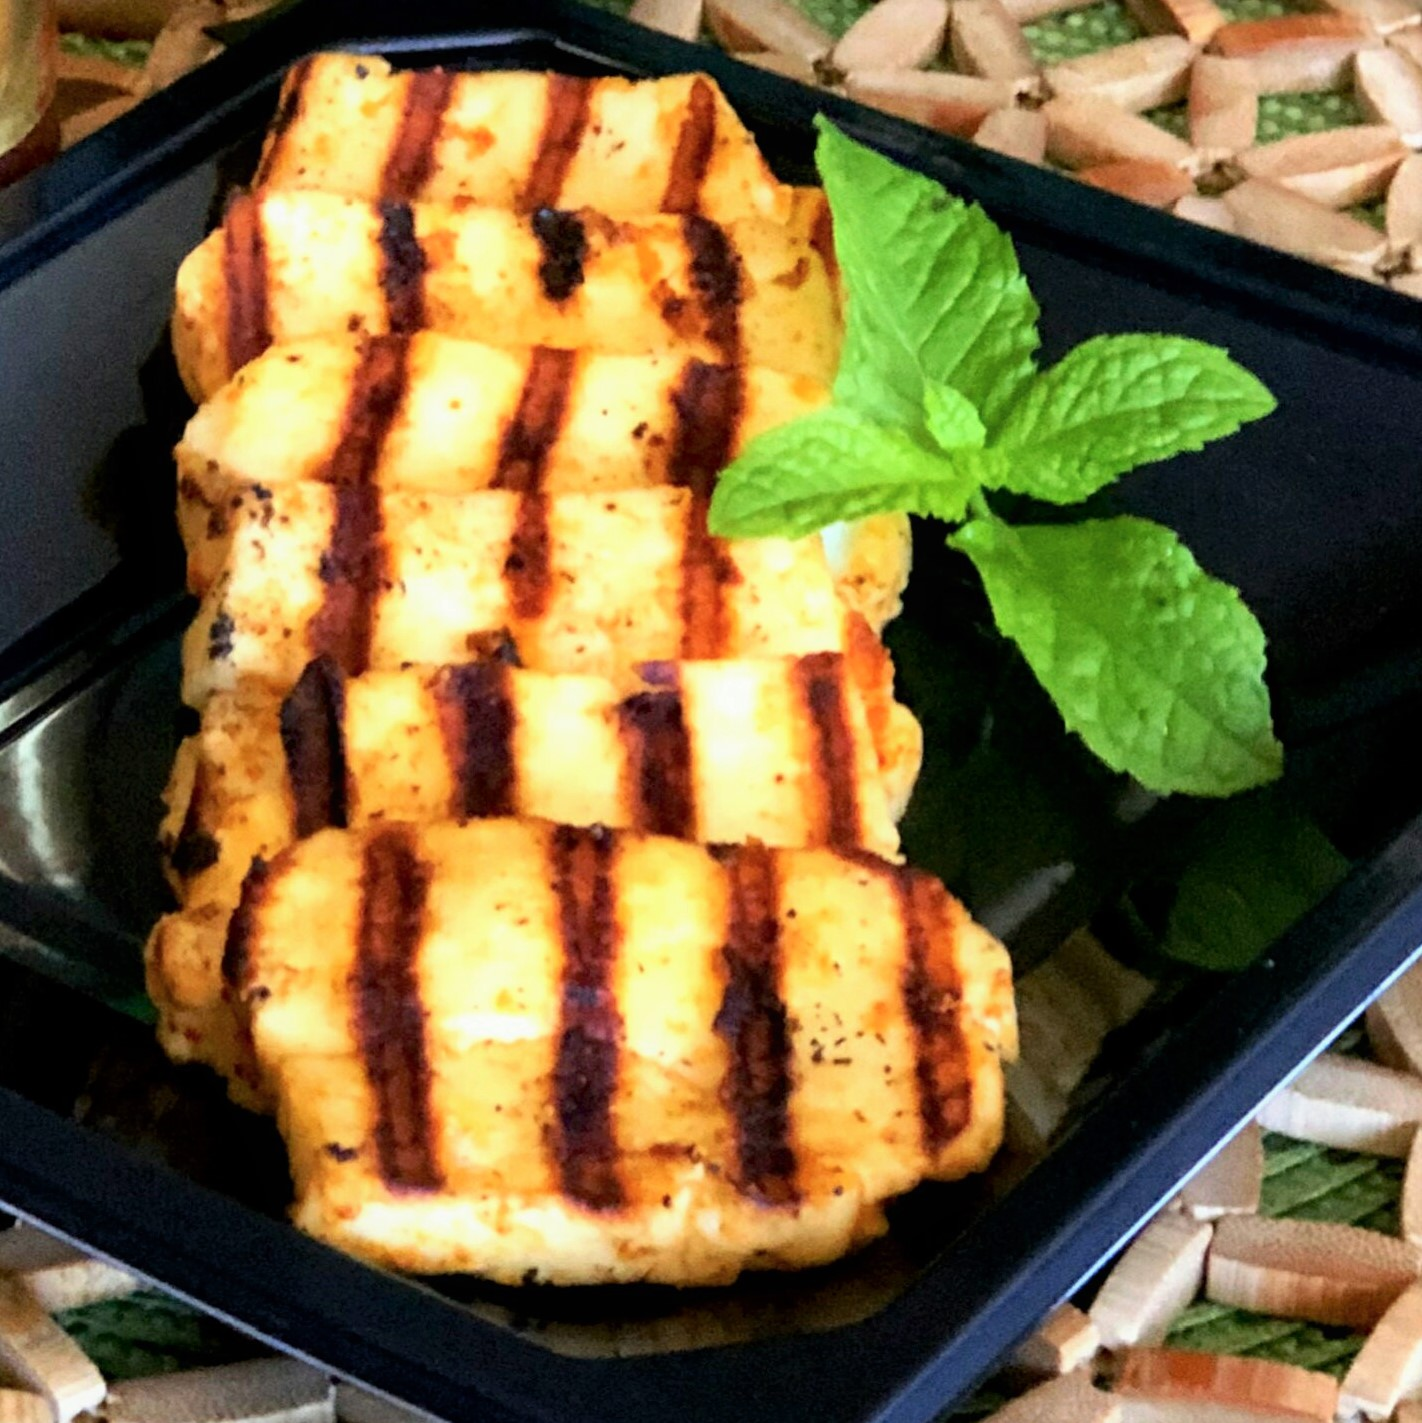 grilled spicy halloumi on a black plate